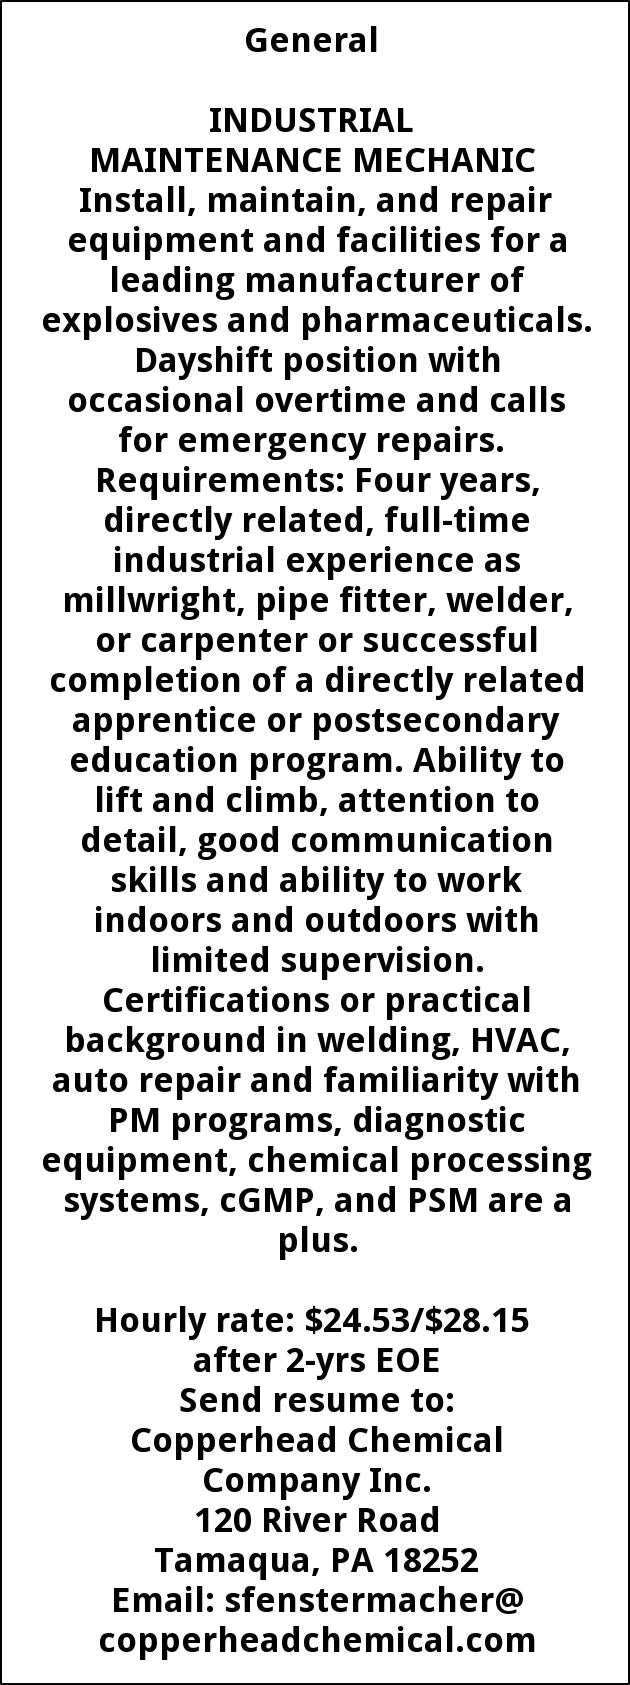 Industrial Maintenance Mechanic Copperhead Chemical